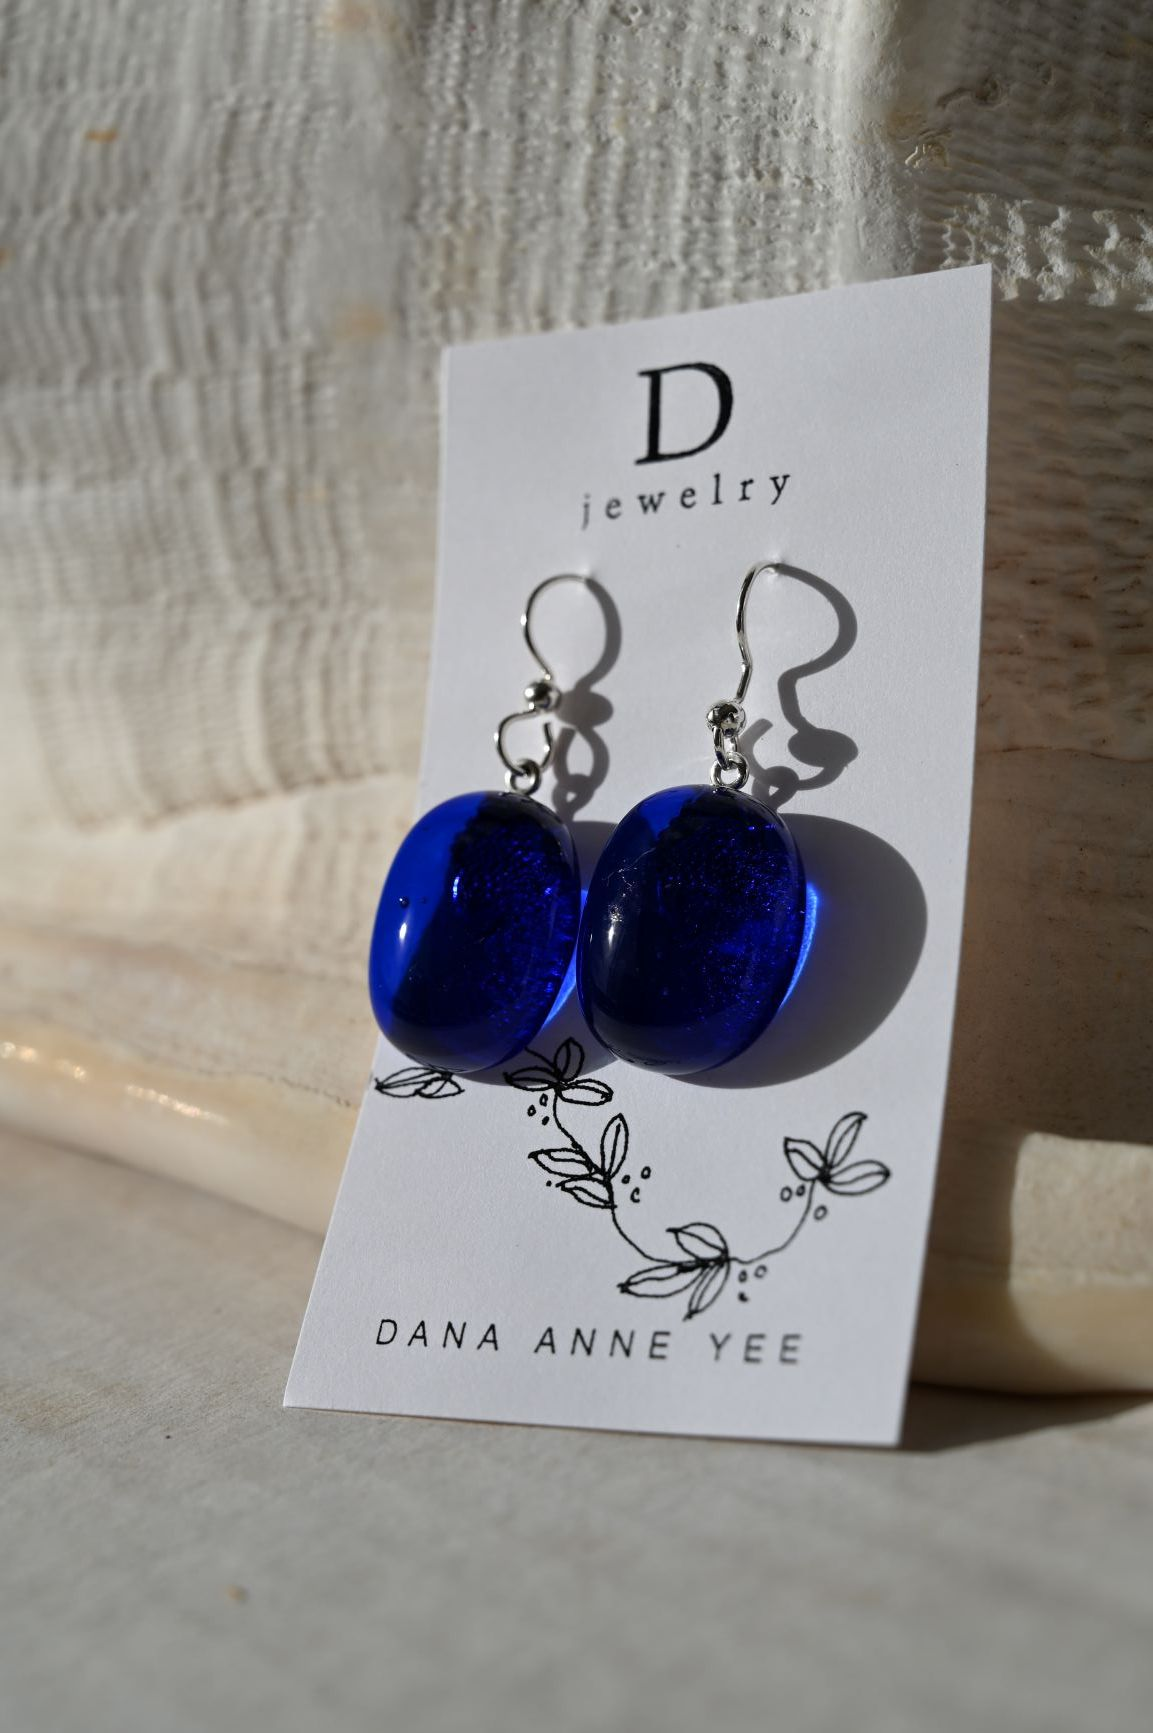 DAY-106 - Royal Blue Oval Glass, Sterling Silver, Earrings